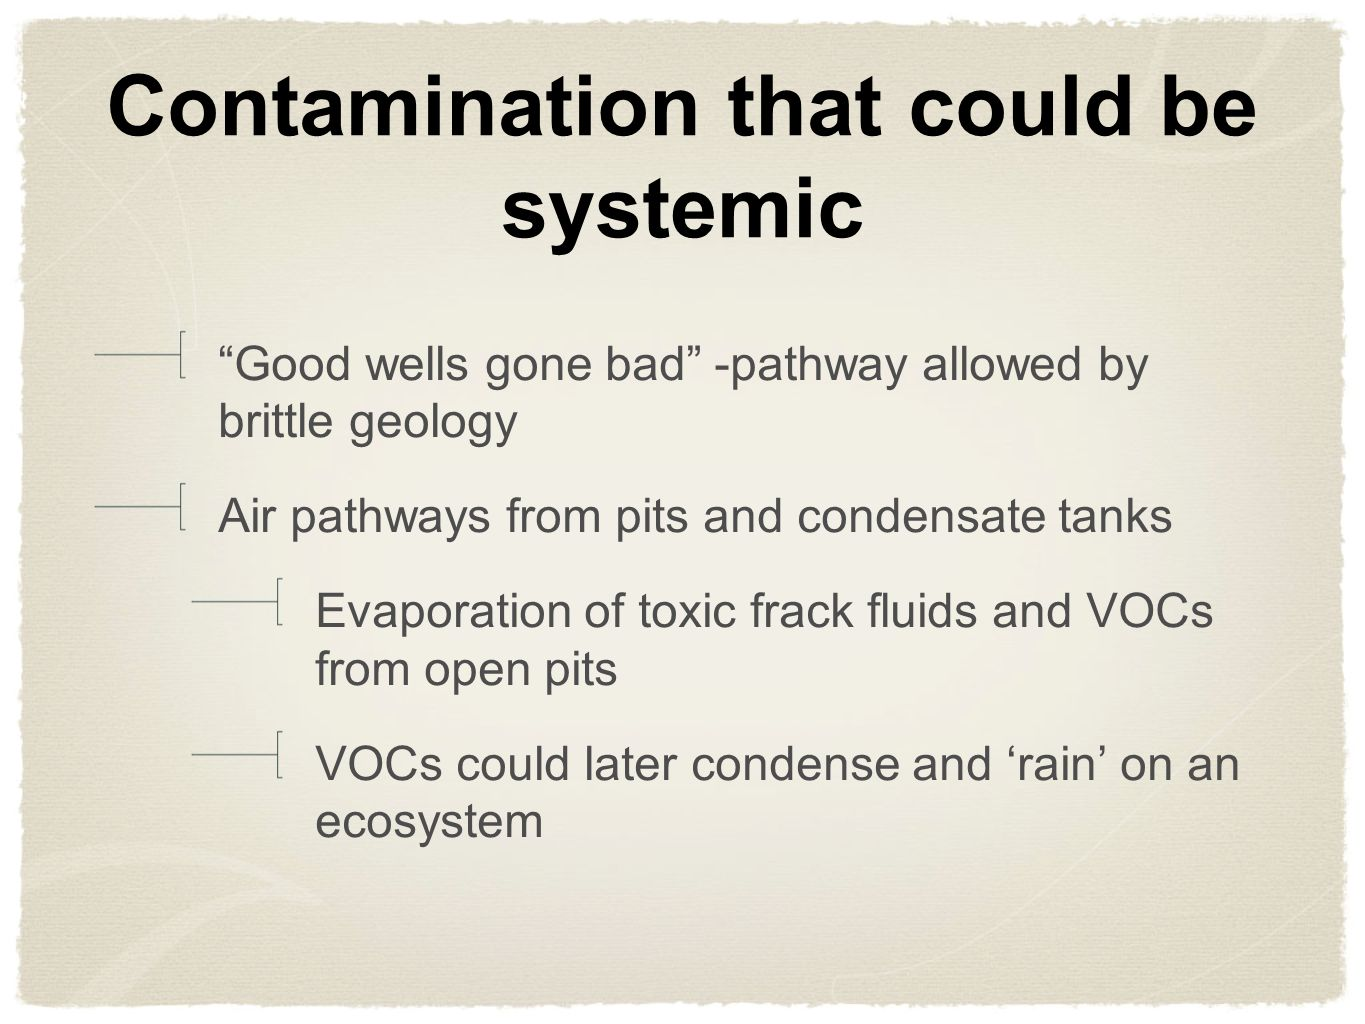 Contamination that could be systemic Good wells gone bad -pathway allowed by brittle geology Air pathways from pits and condensate tanks Evaporation of toxic frack fluids and VOCs from open pits VOCs could later condense and rain on an ecosystem